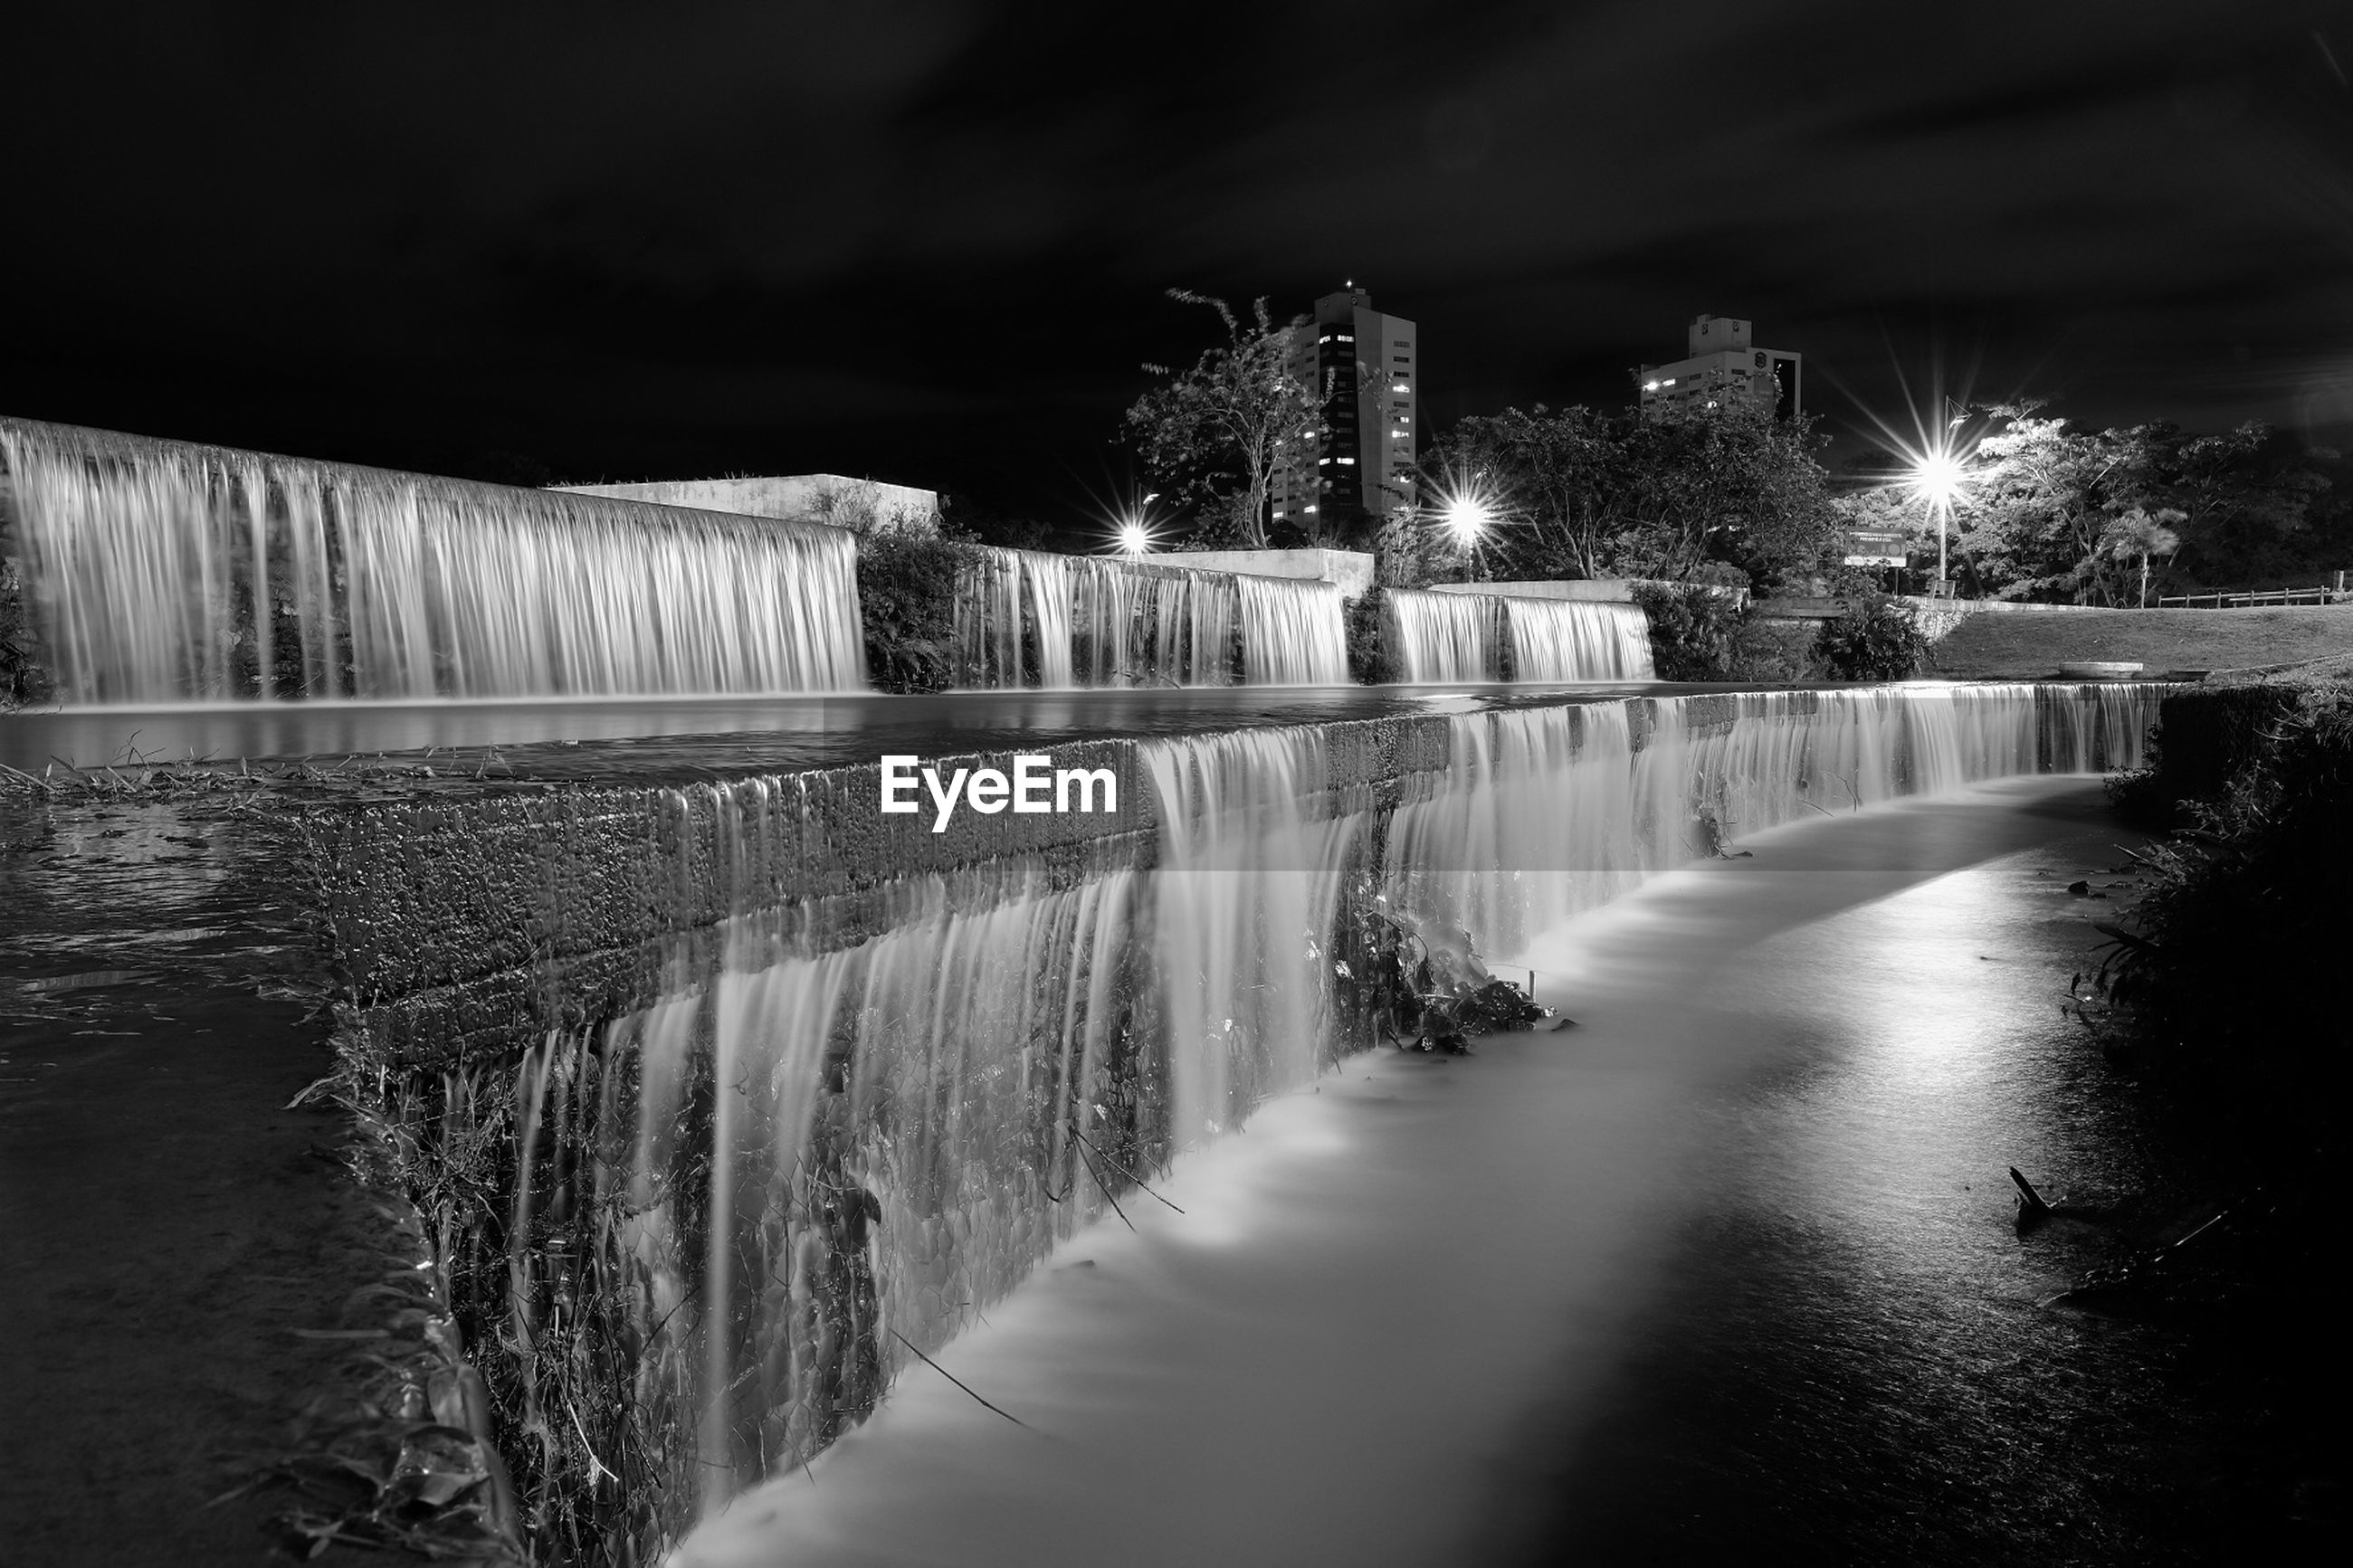 Blurred motion of waterfall in illuminated city at night